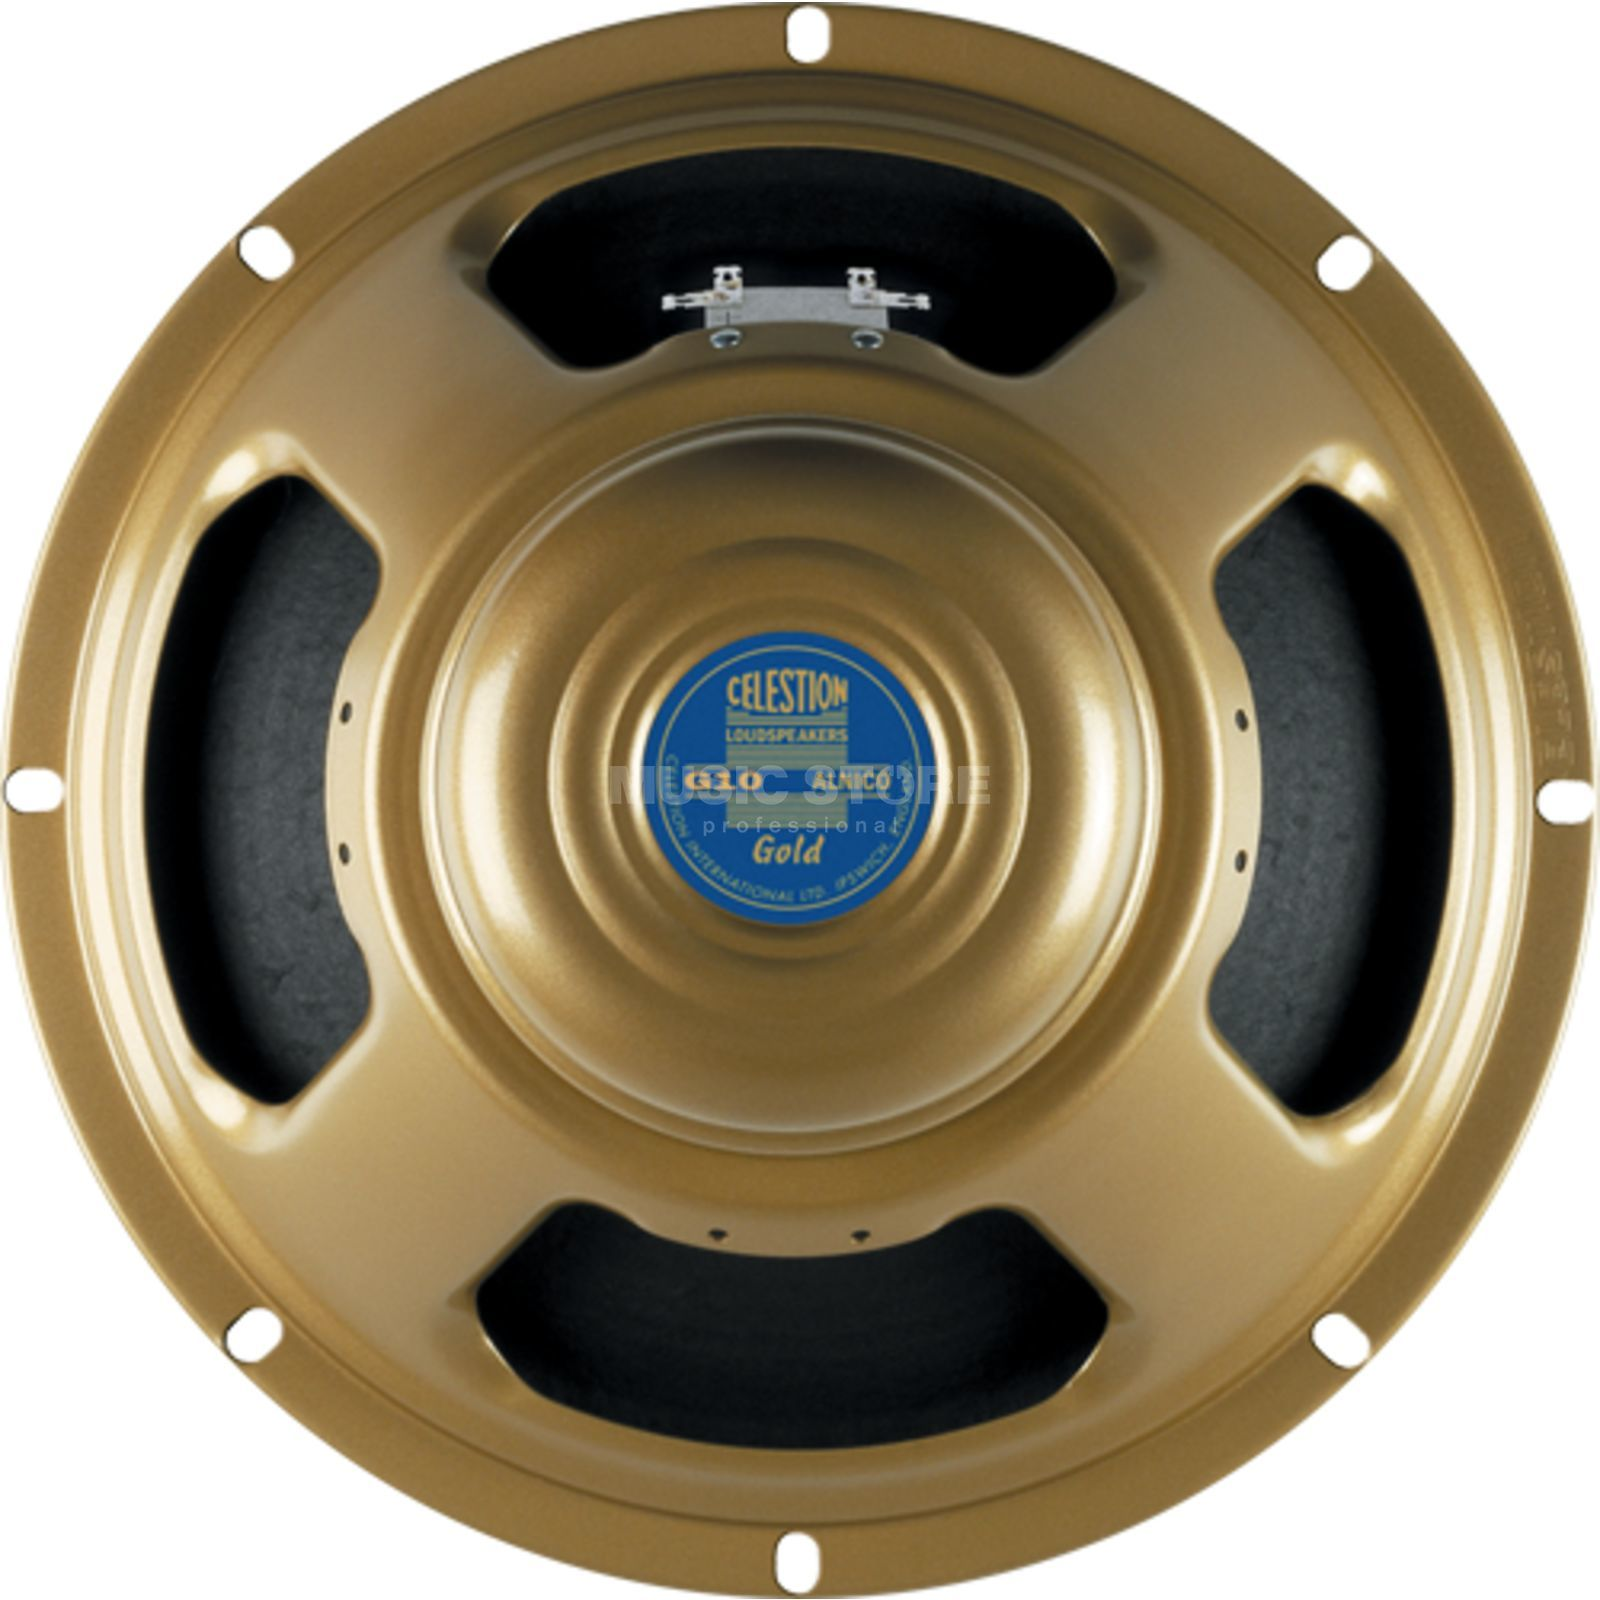 "Celestion G10 Gold 10"" Speaker 15 Ohm Produktbillede"